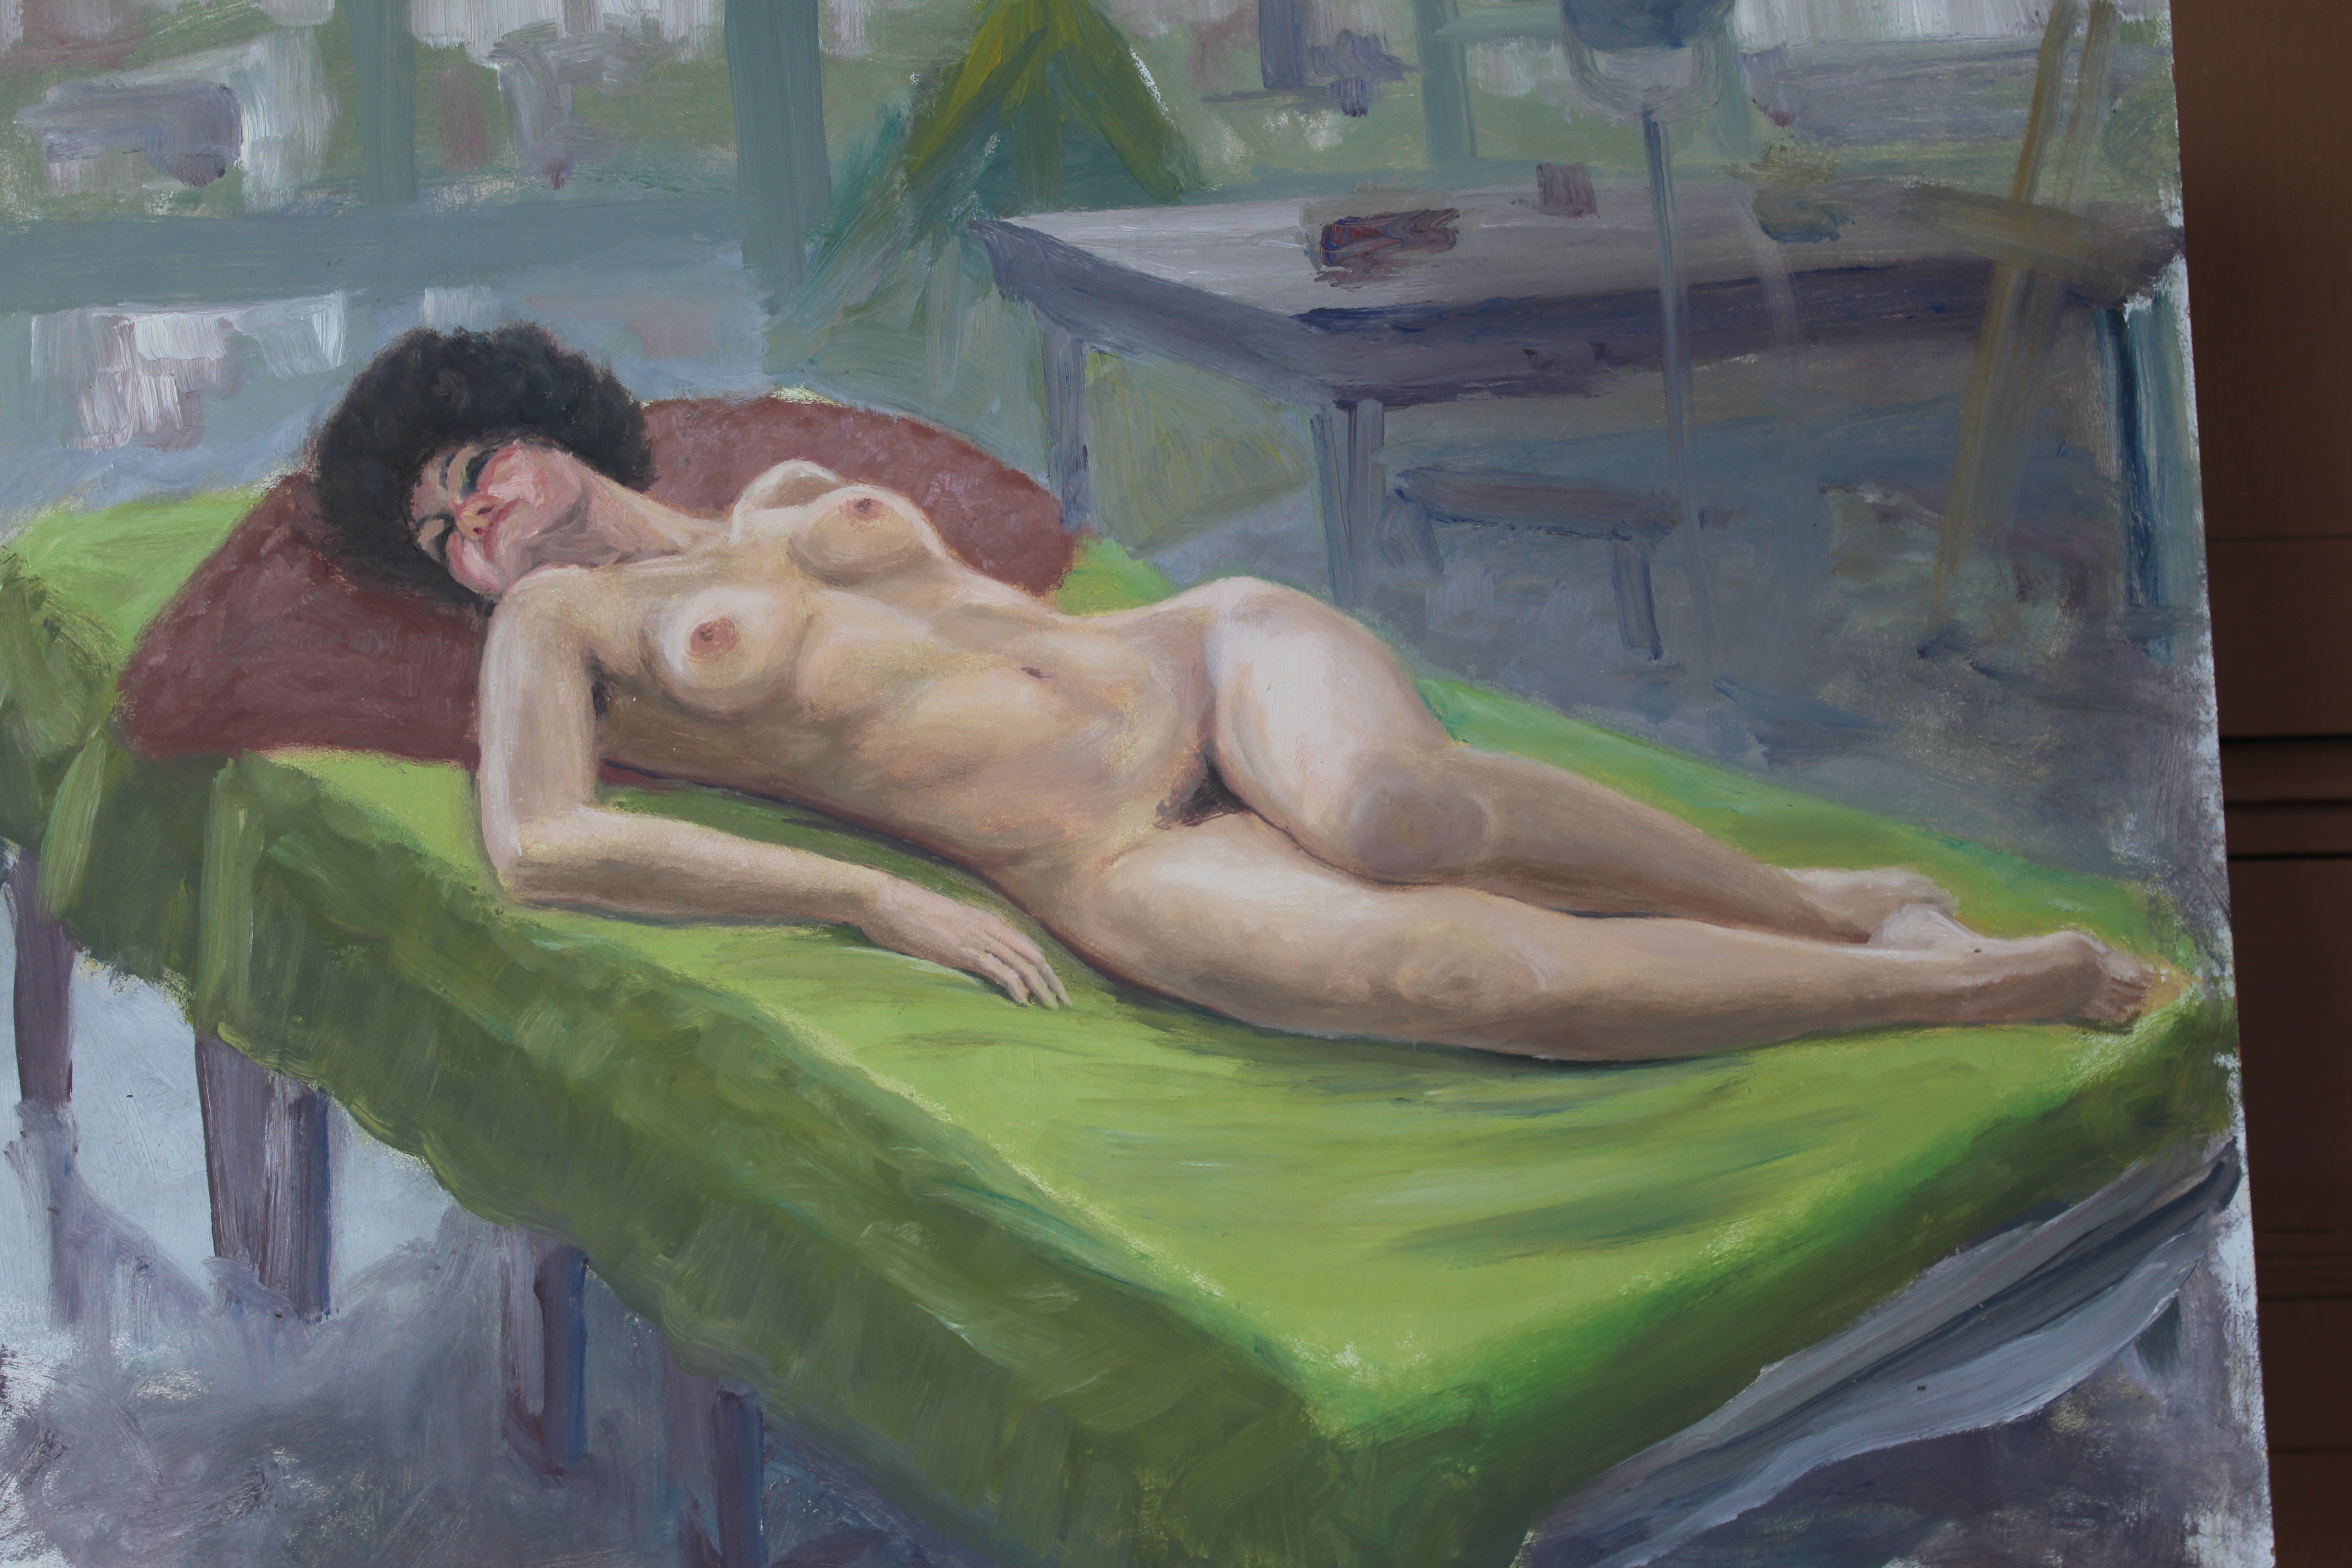 •STUDY OF A FEMALE NUDE RECLINING ON A DAY BED Unsigned unframed oil on board, 46 x 61cm, three